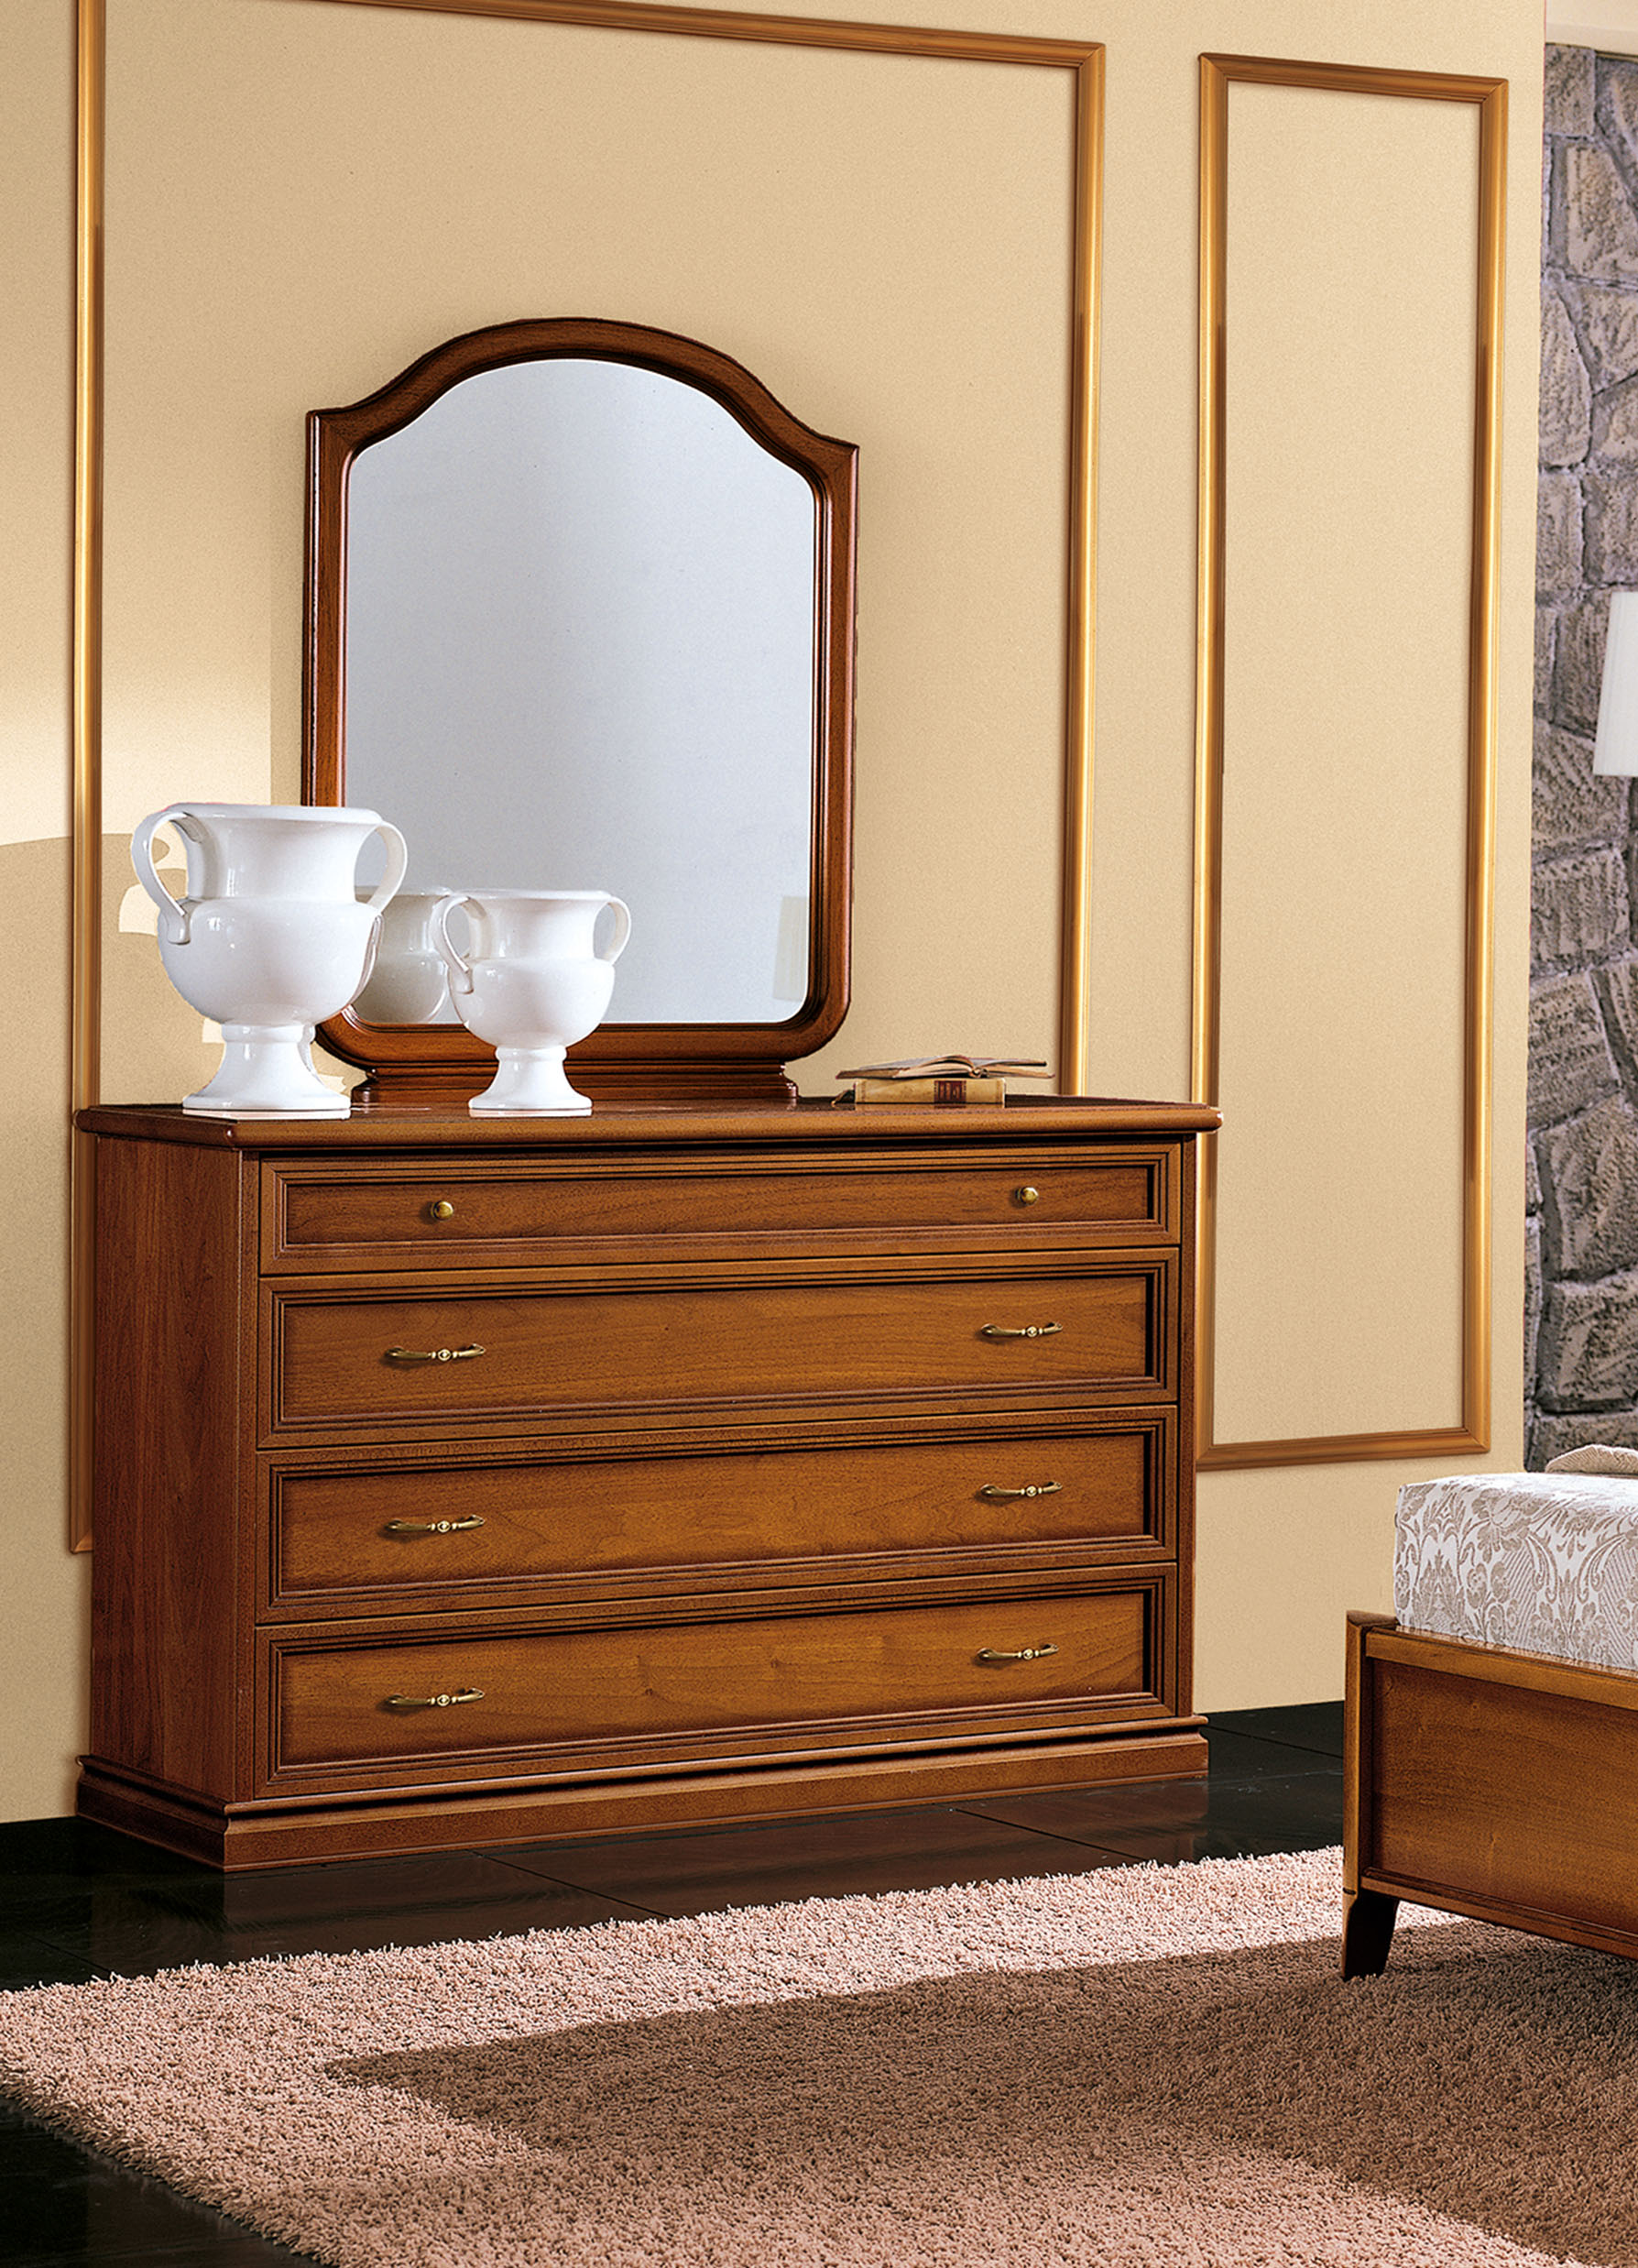 modus espresso clearance nevis mdf finish dresser image furniture only main drawer zoomed